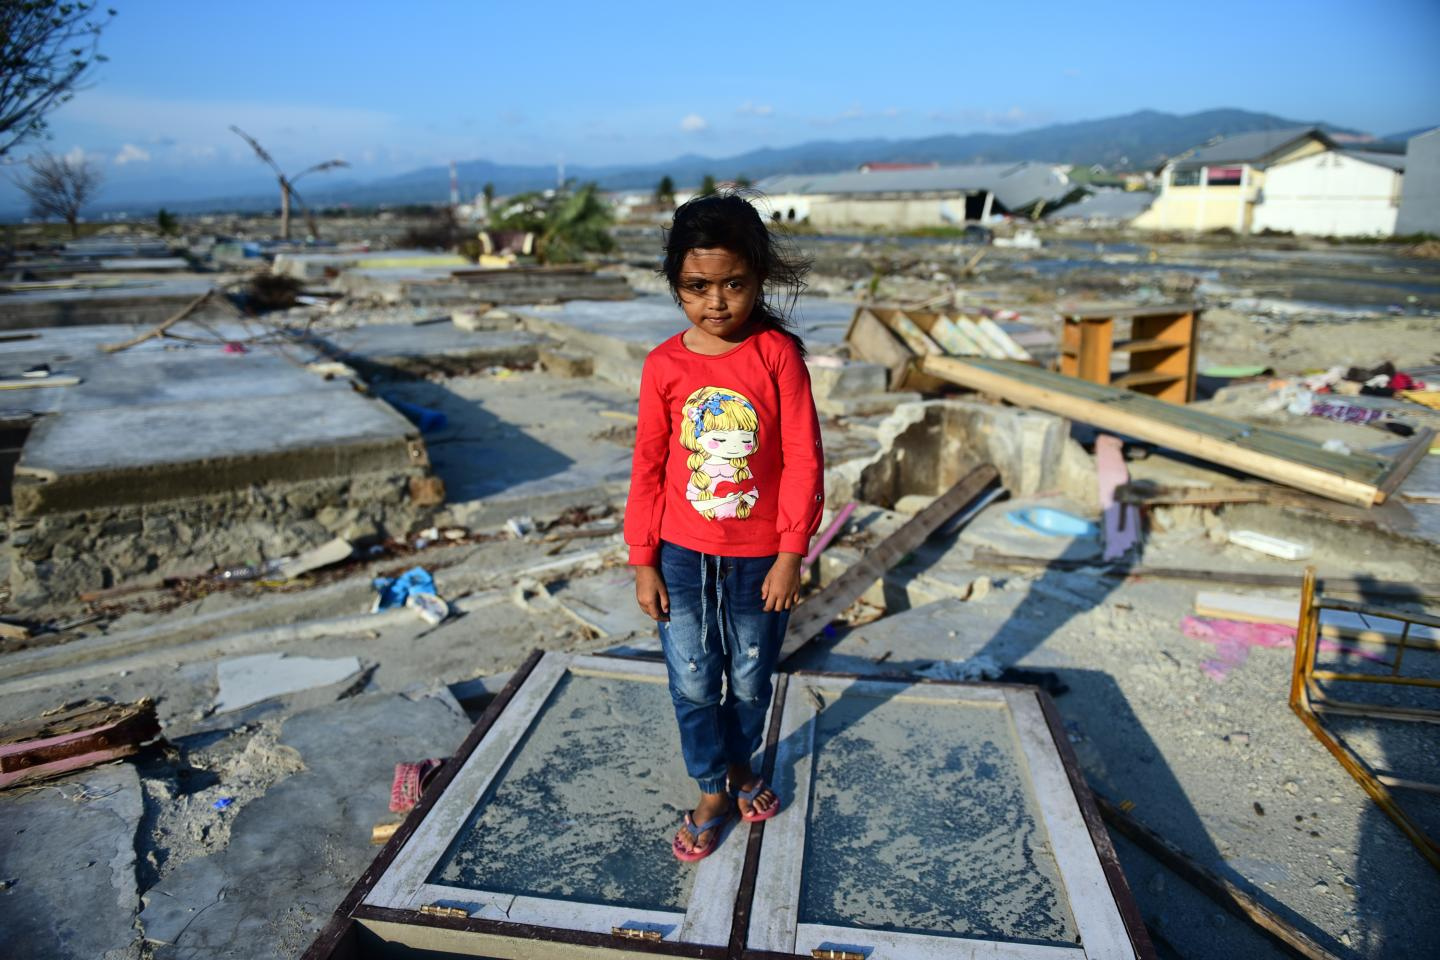 A girl stands among the ruins of her home which was destroyed by the 28 September earthquake and tsunami in Indonesia.